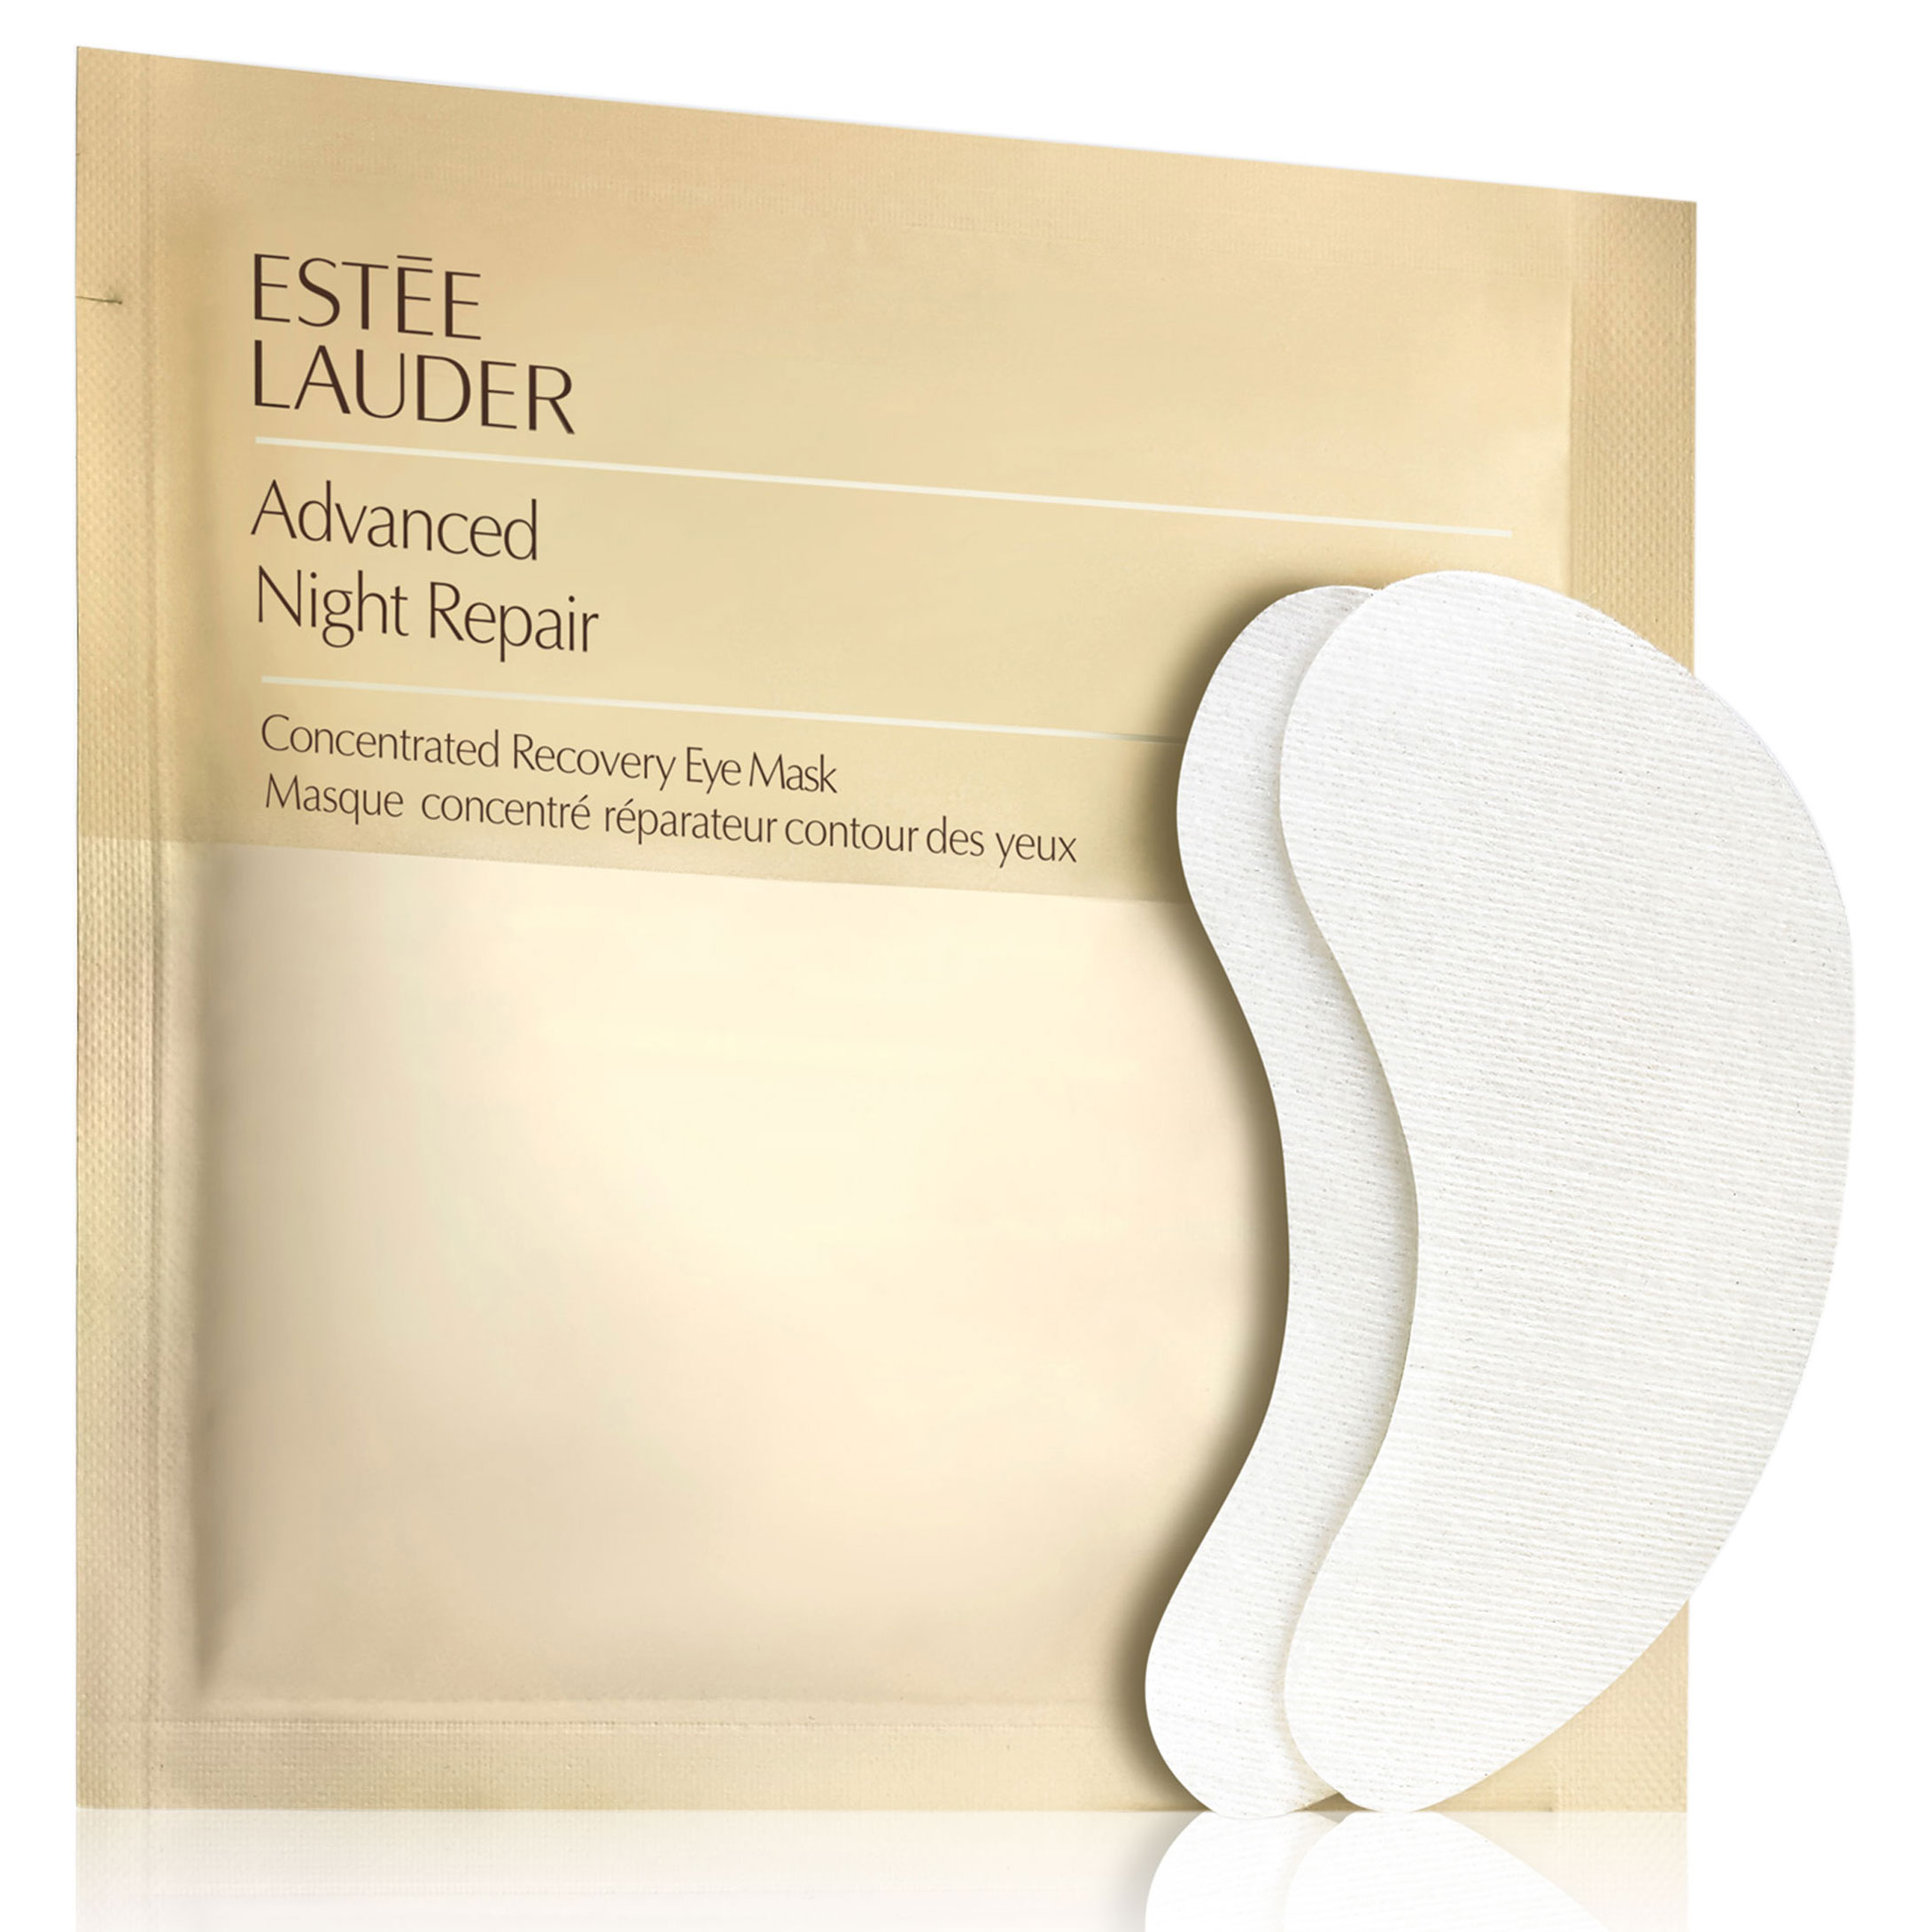 Afbeelding van Estée Lauder Advanced Night Repair Concentrated Recovery Eye Mask 1 pair